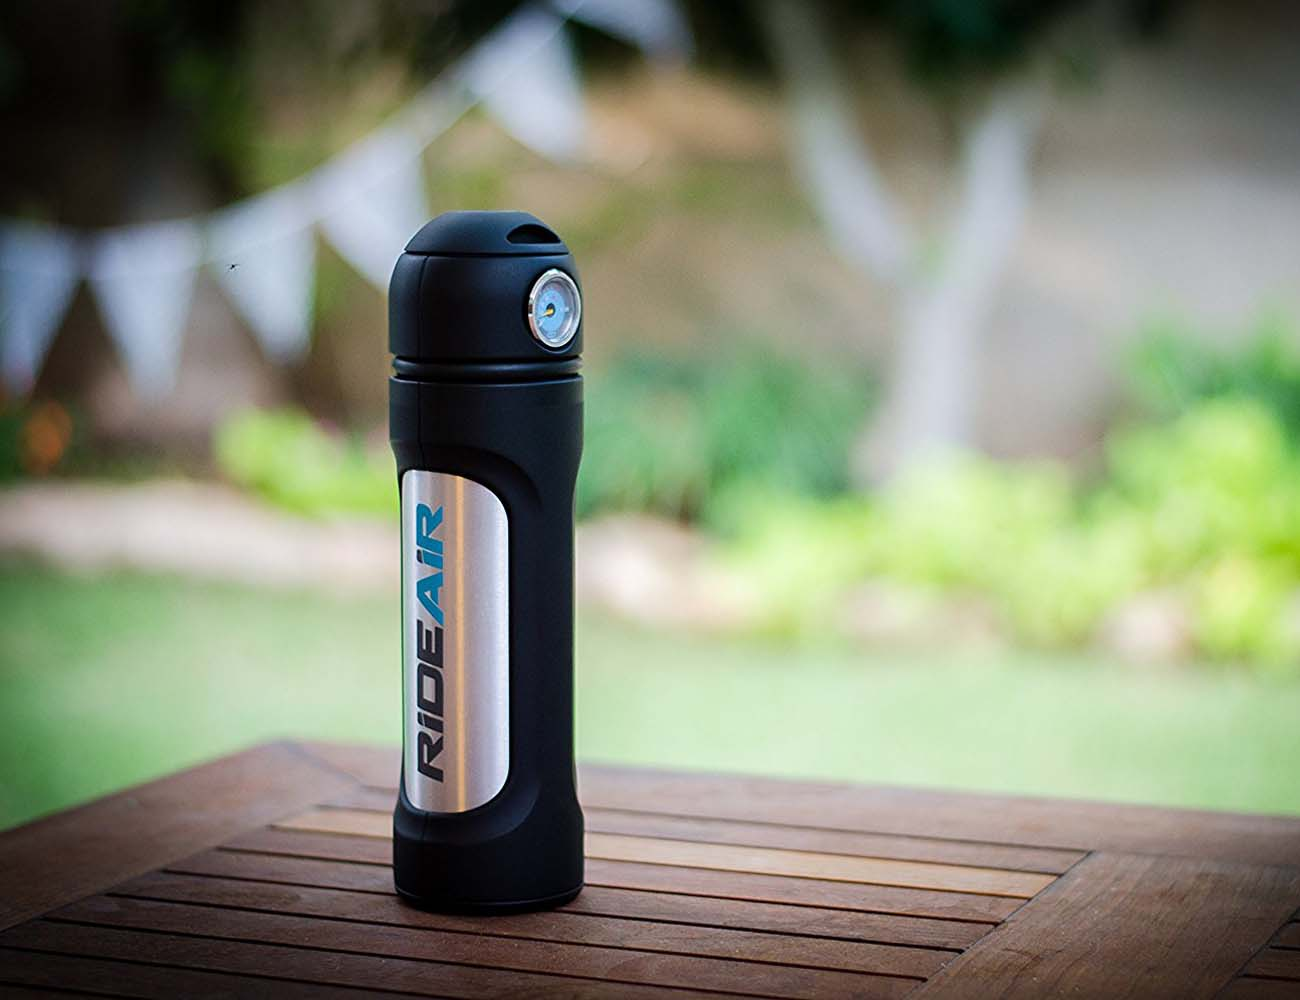 RideAir – The Next Generation Of Effortless Air Pumps